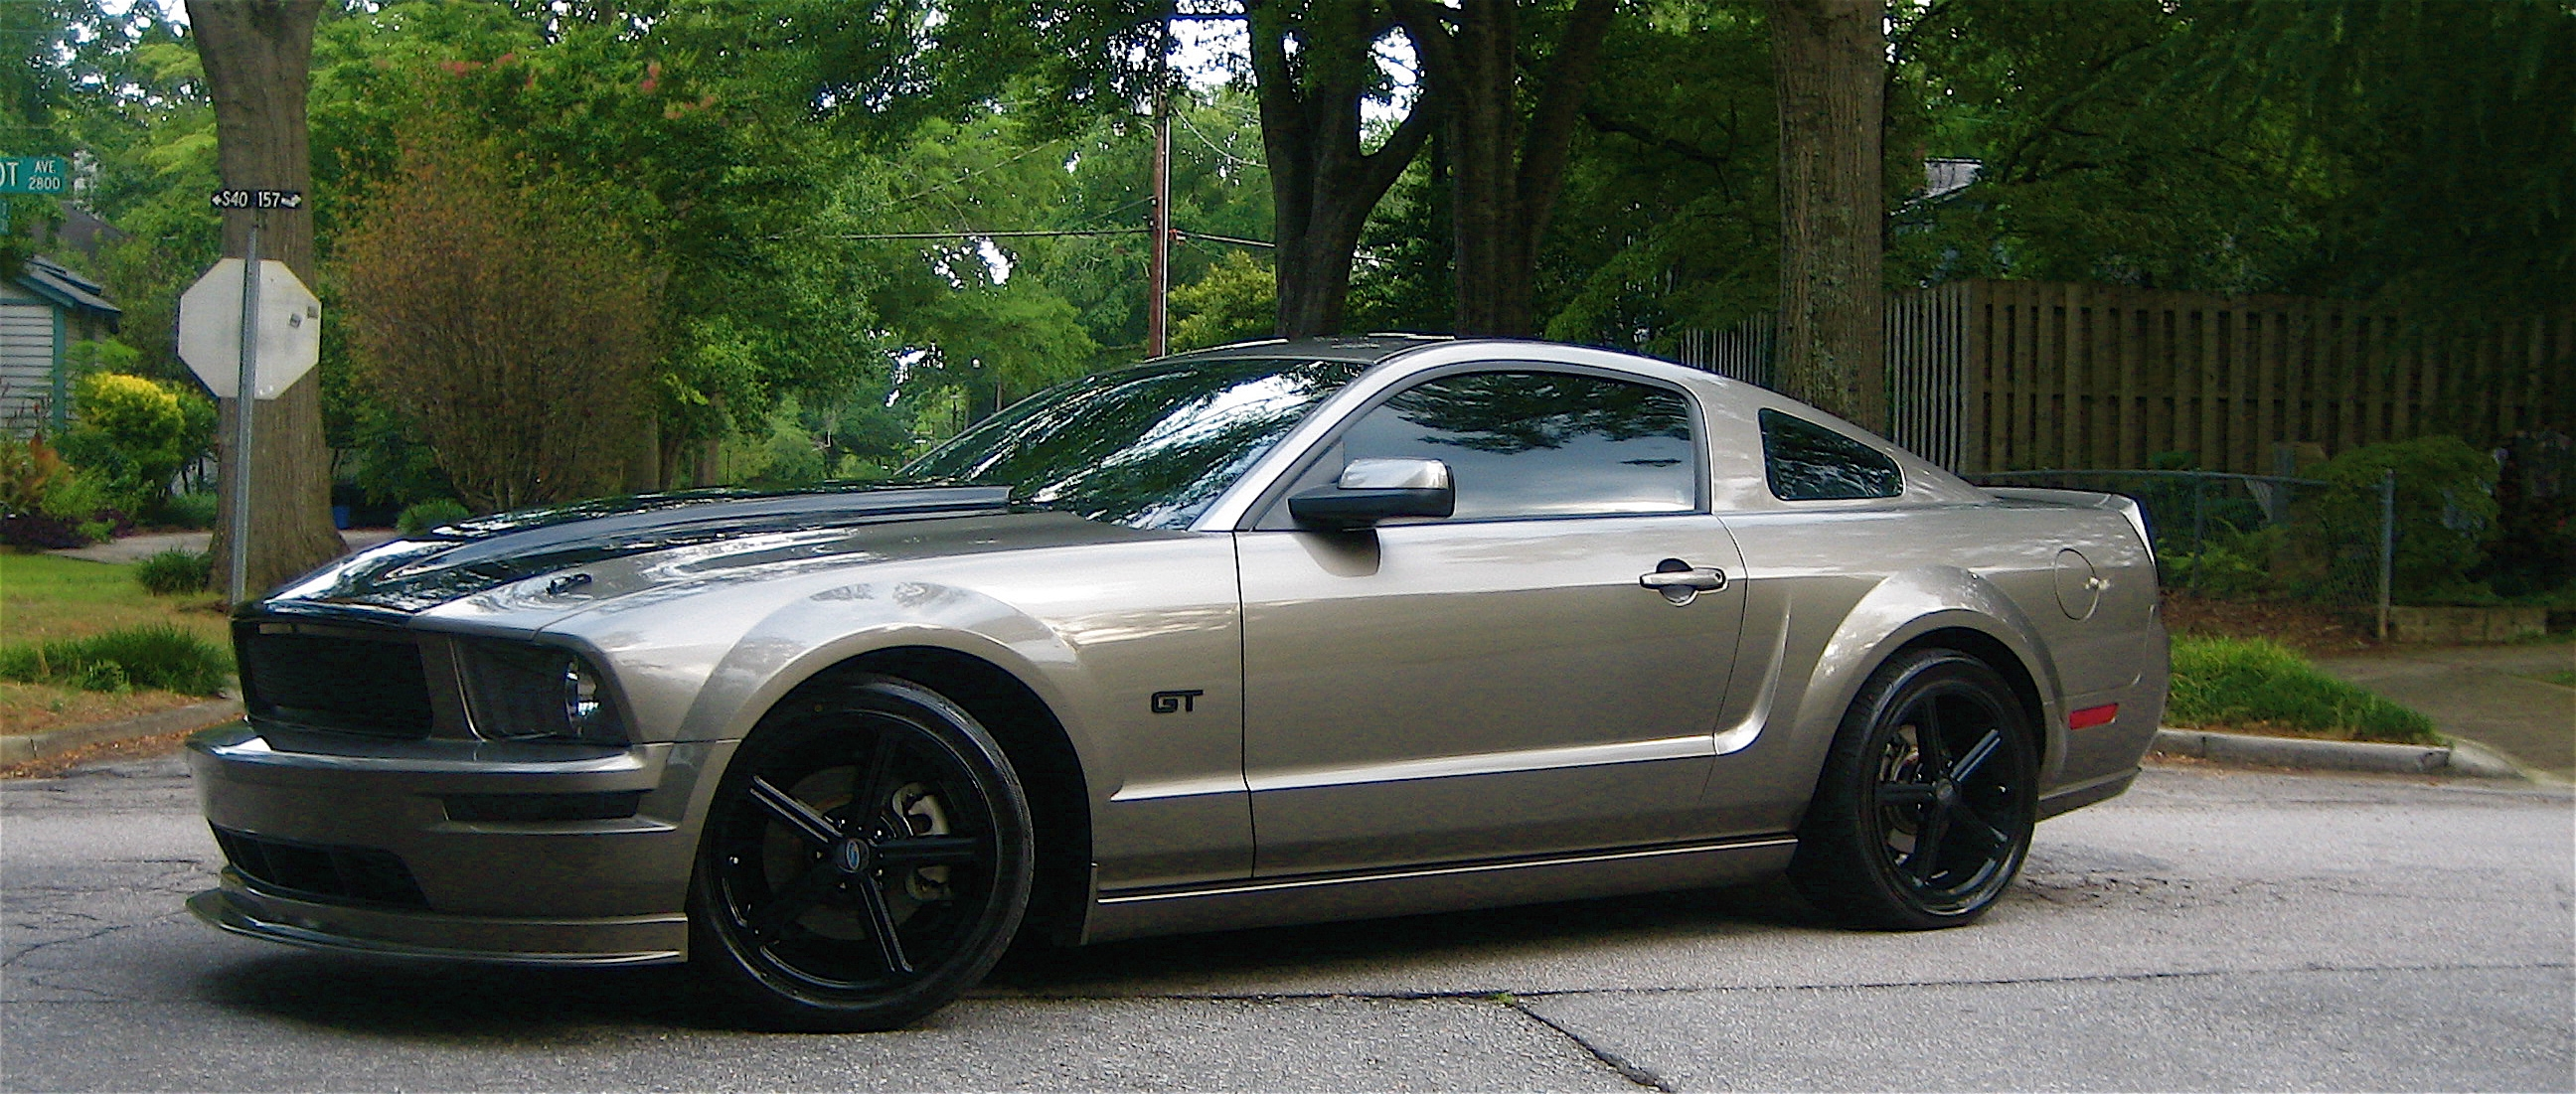 pike2244 2005 ford mustang specs photos modification info at cardomain. Black Bedroom Furniture Sets. Home Design Ideas